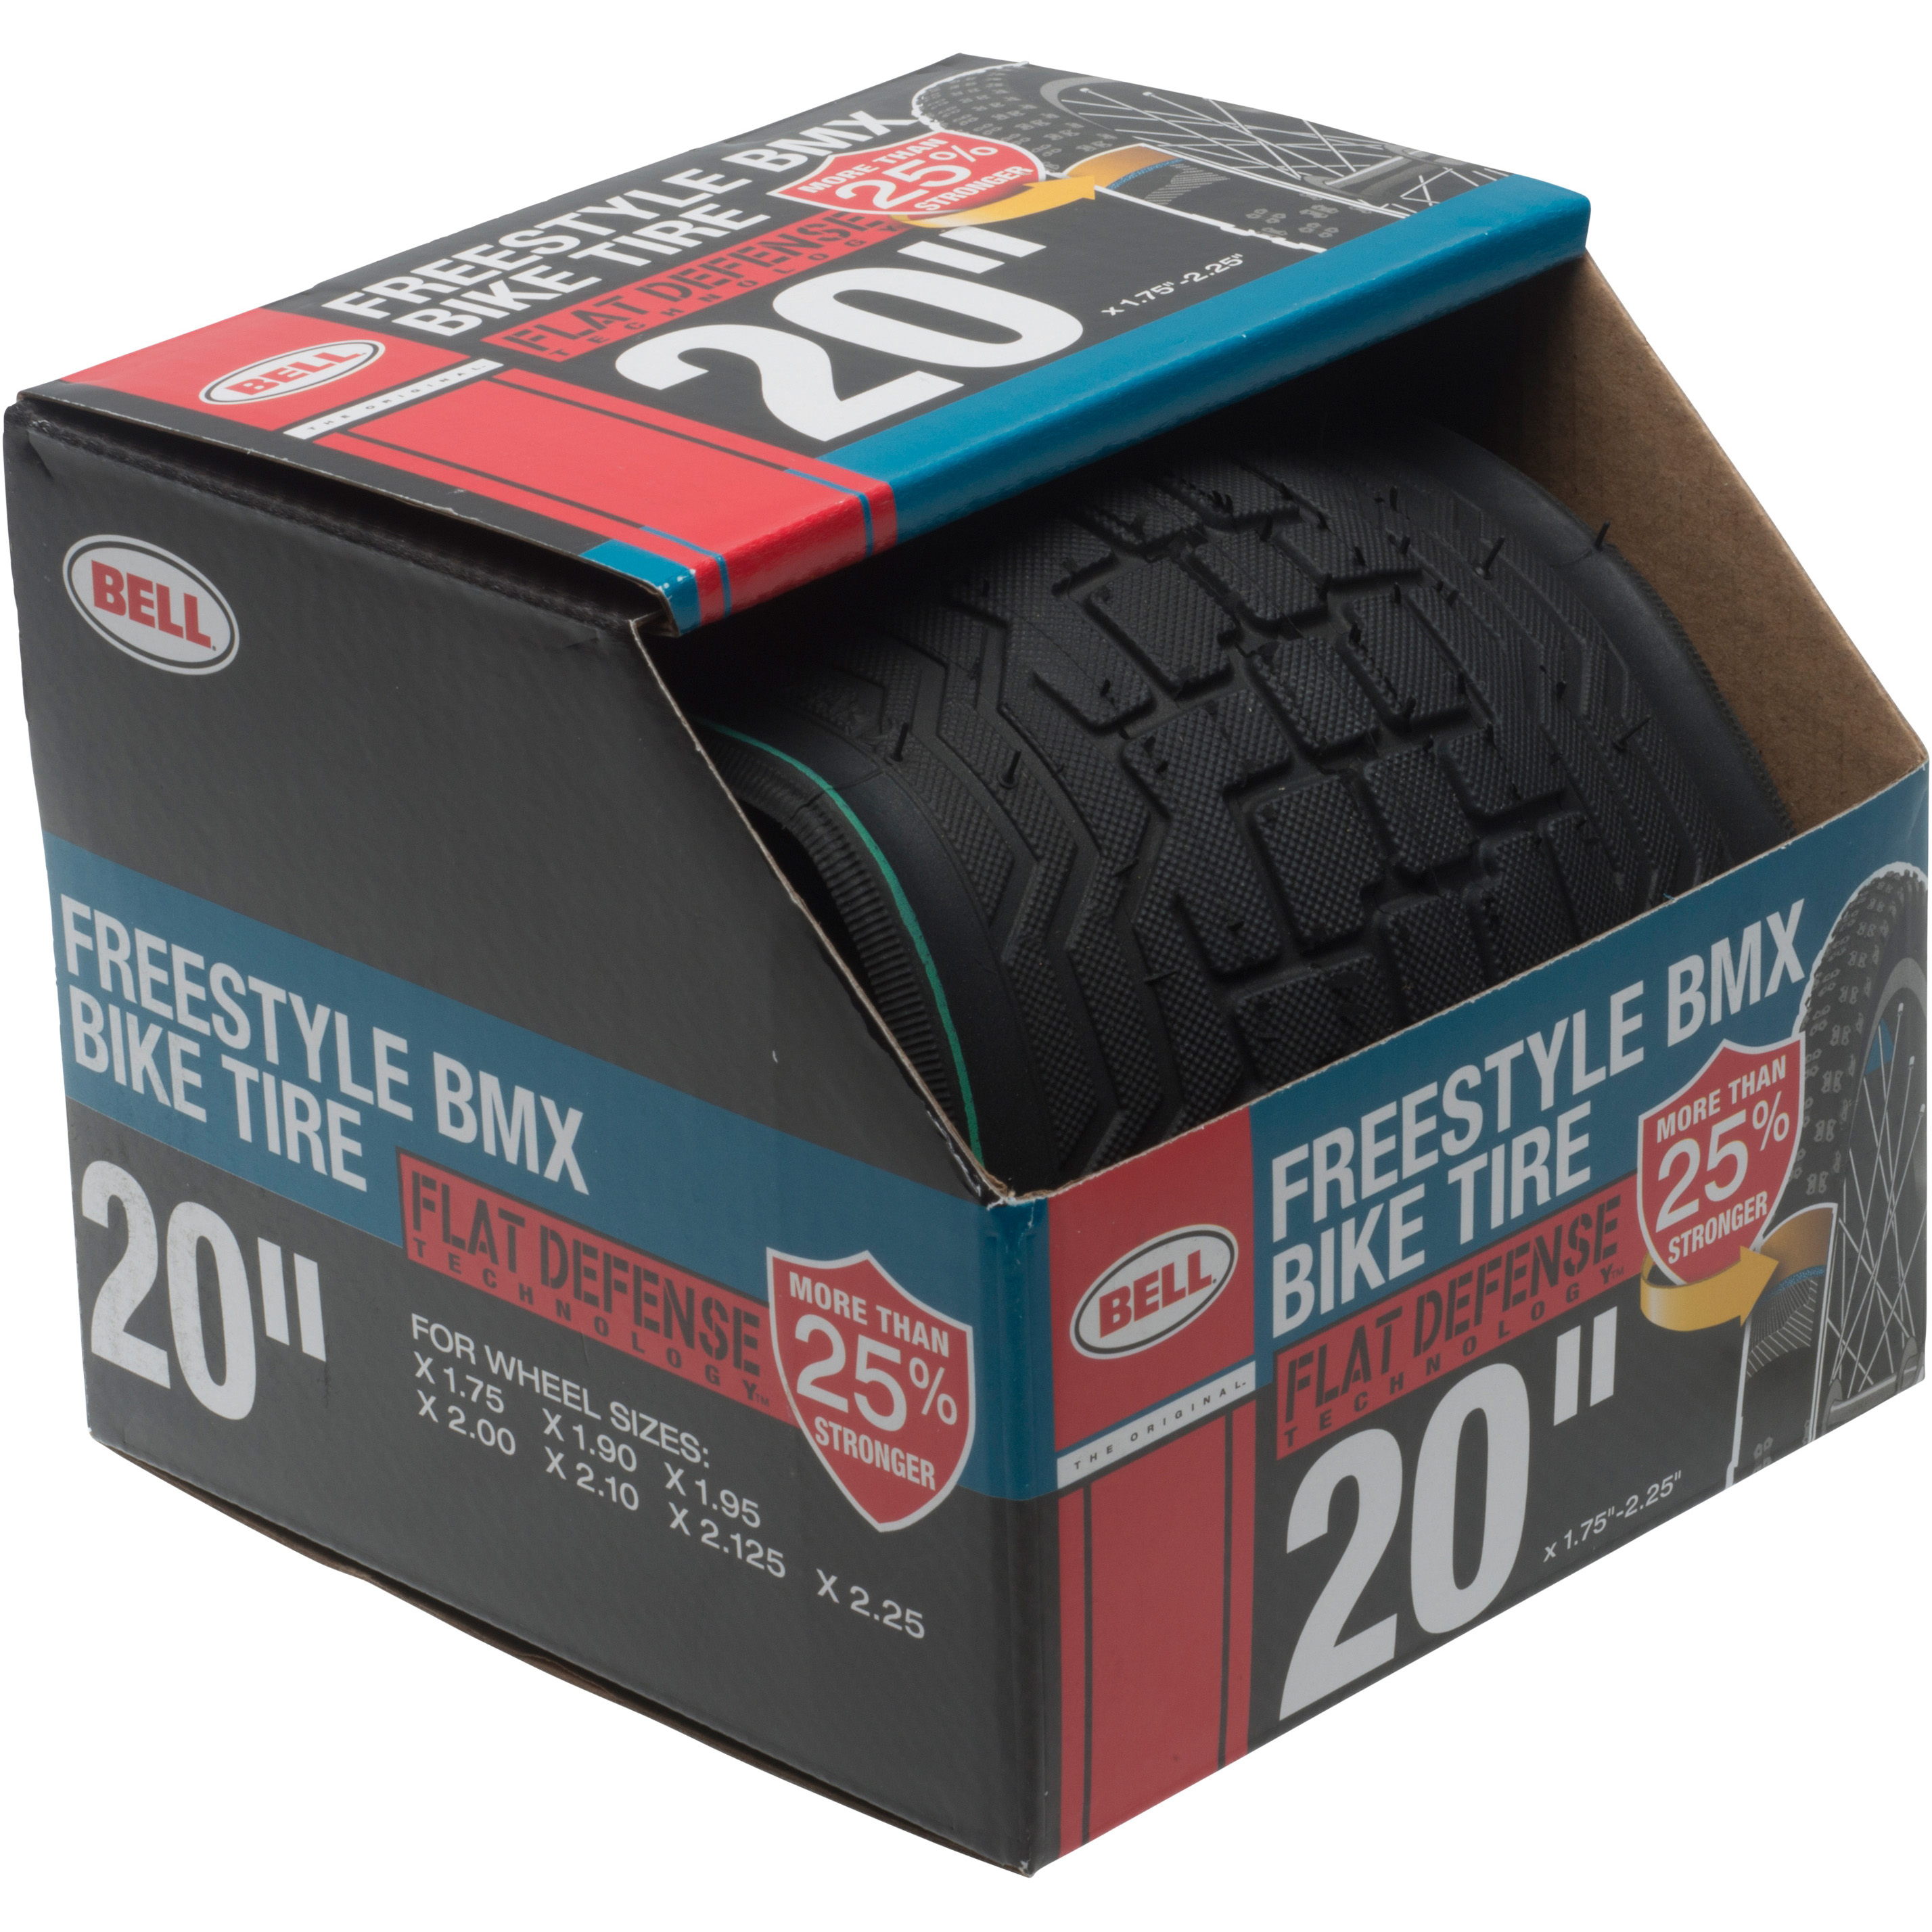 "Bell Sports Flat Defense BMX Freestyle Bike Tire, 20"" x 1.75-2.25"", Black"